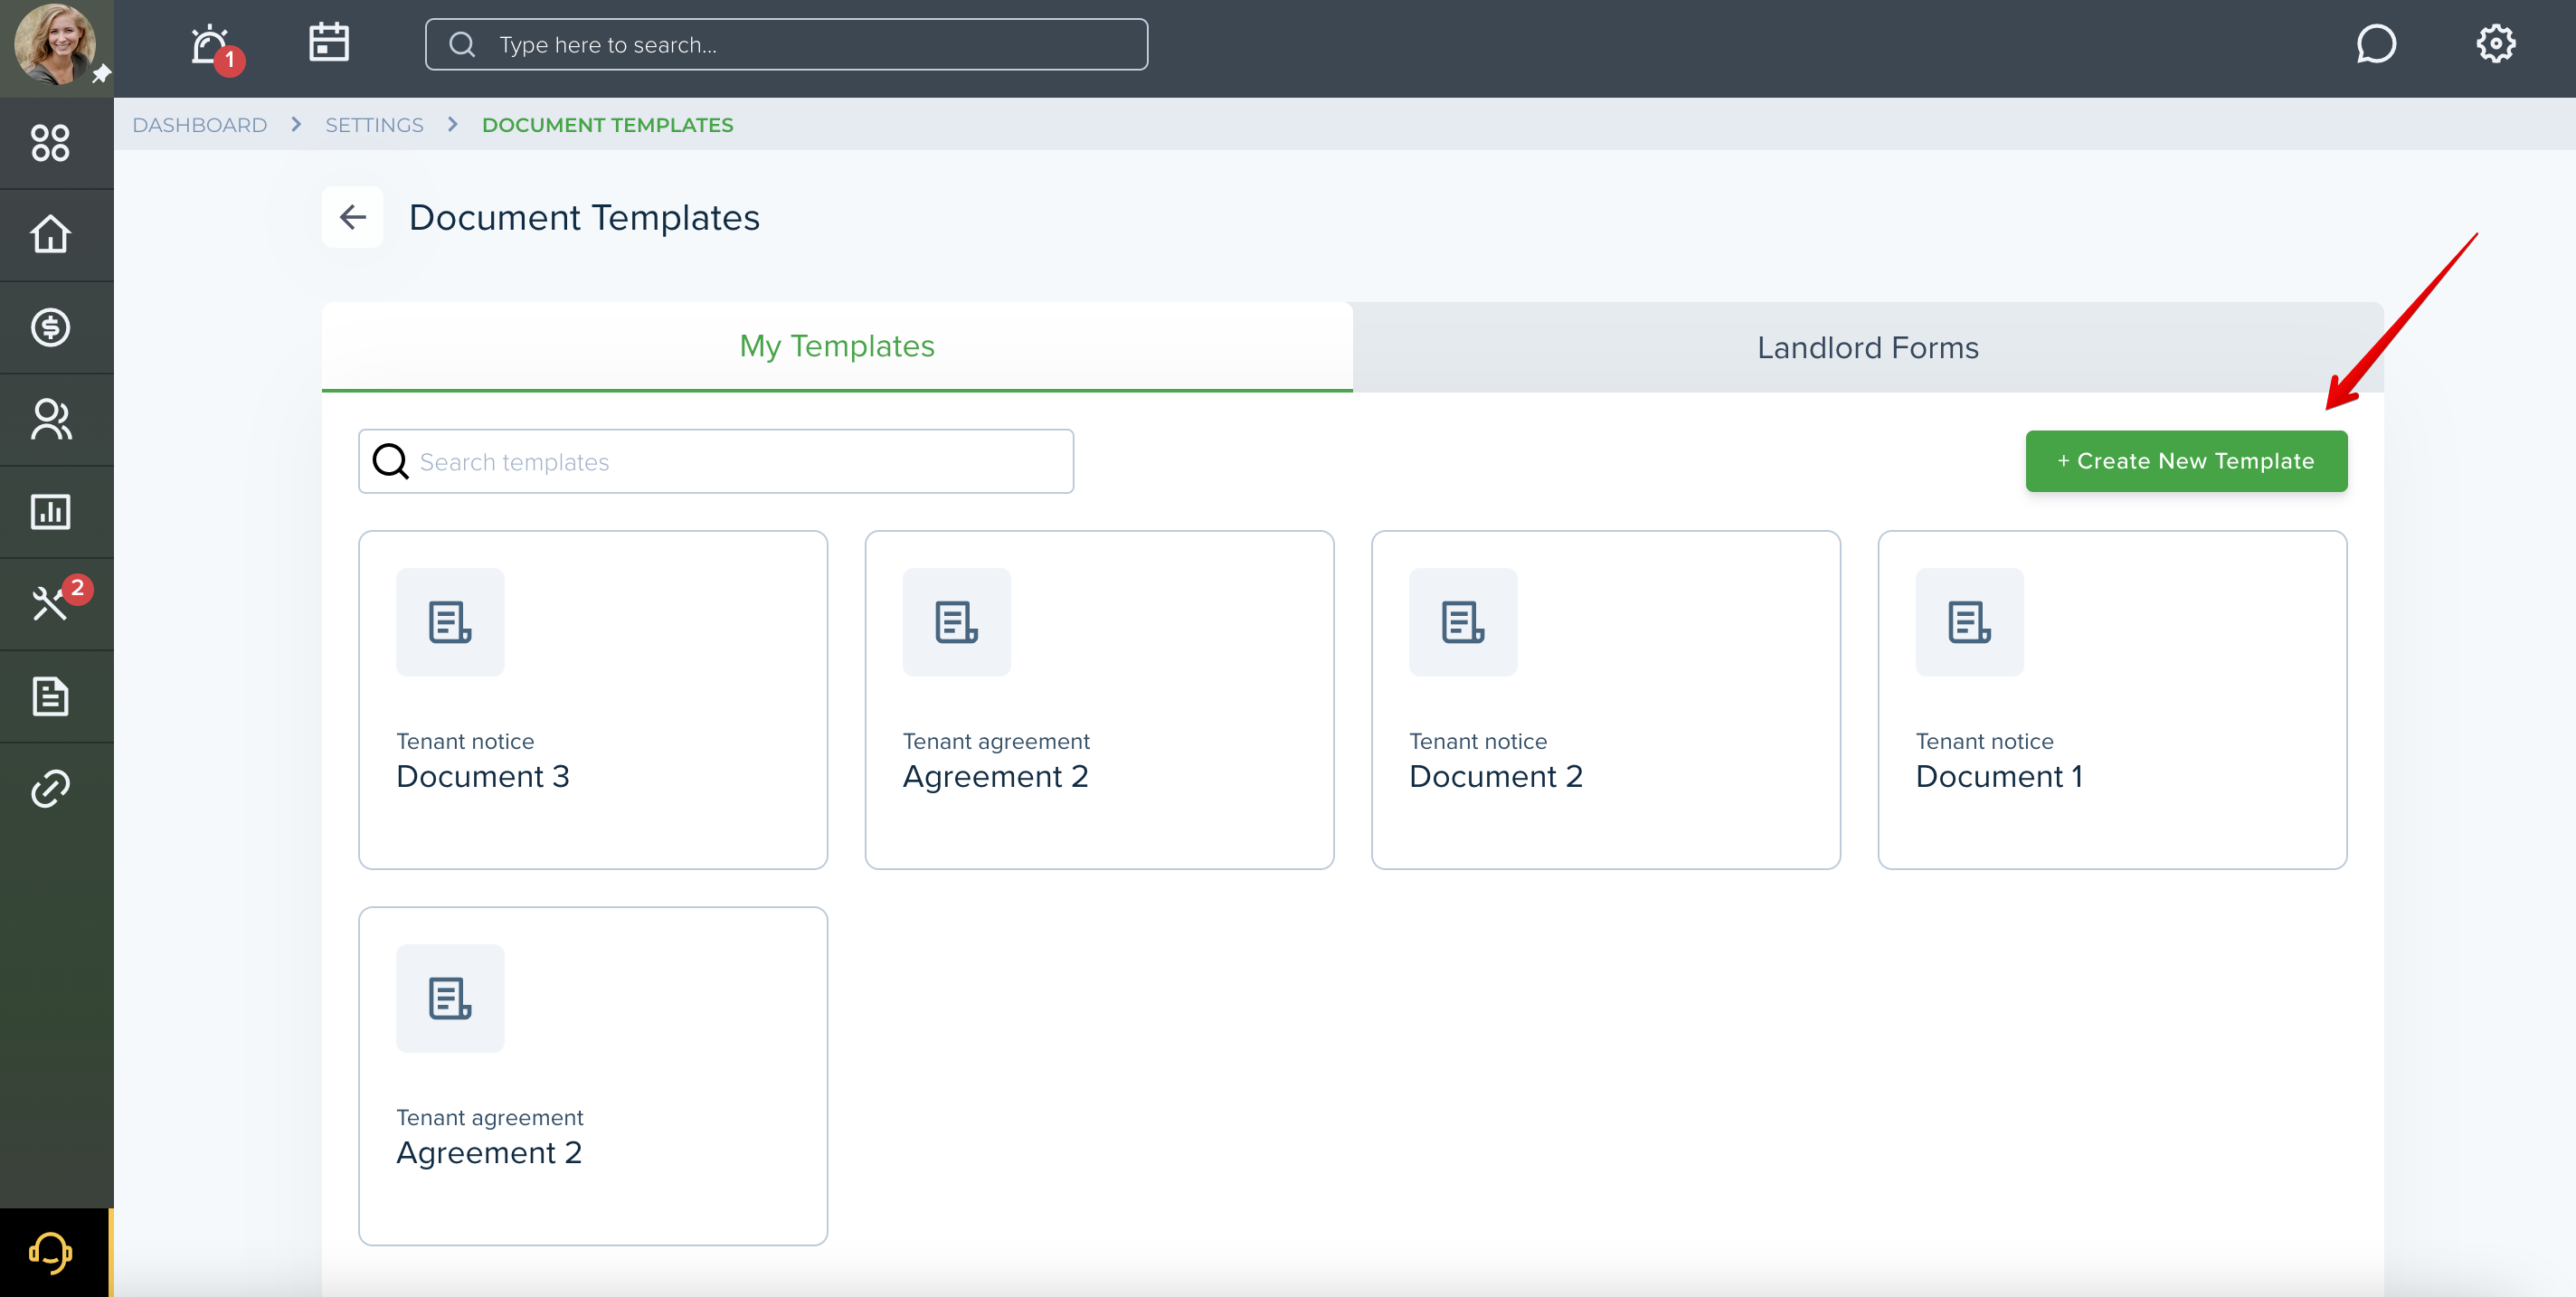 how to create a new rental agreement document in TenantCloud account